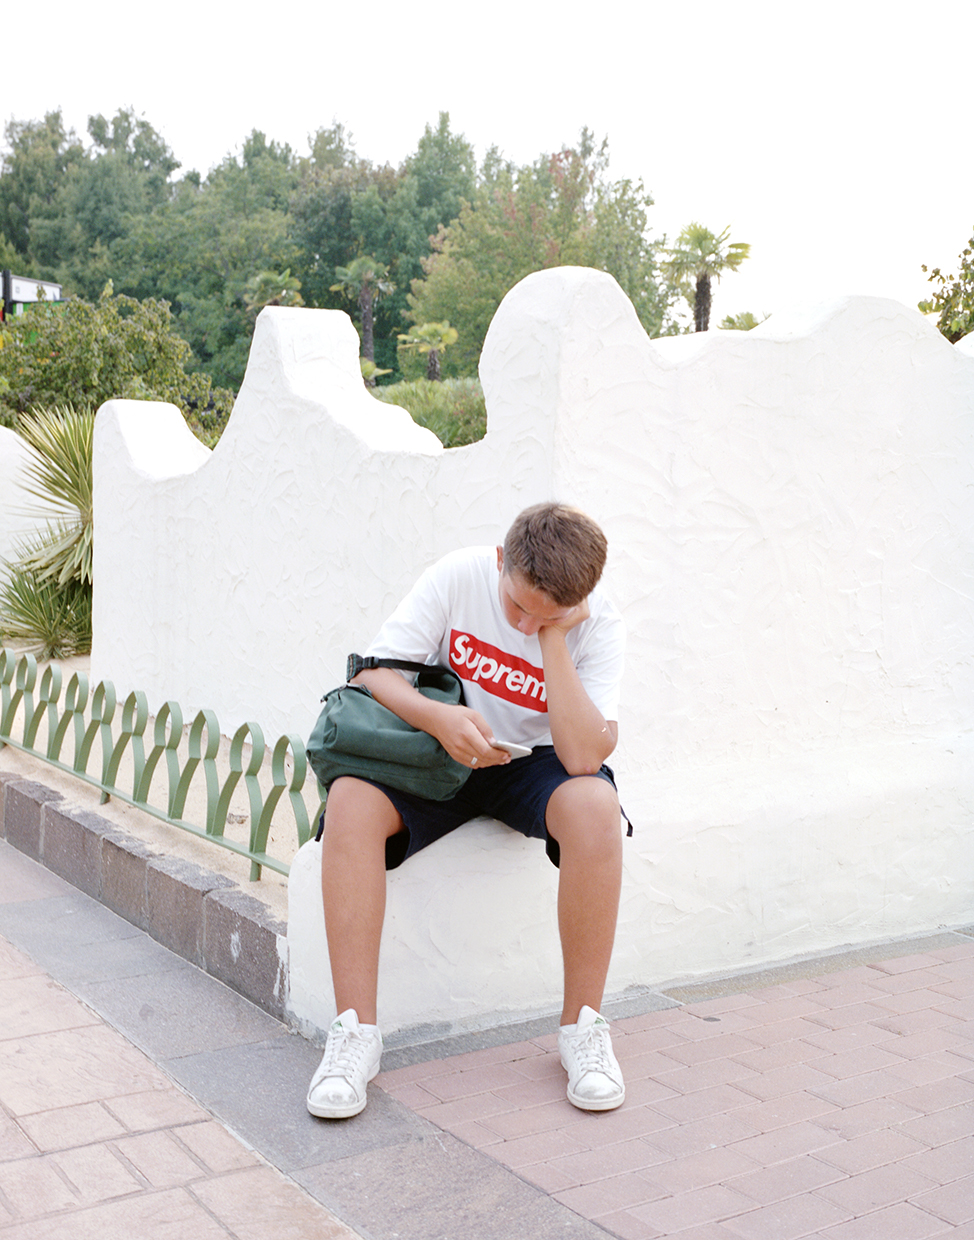 Ronchi, 2017, ItalyA bored youngster inside Gardaland, the biggest fun park in Italy